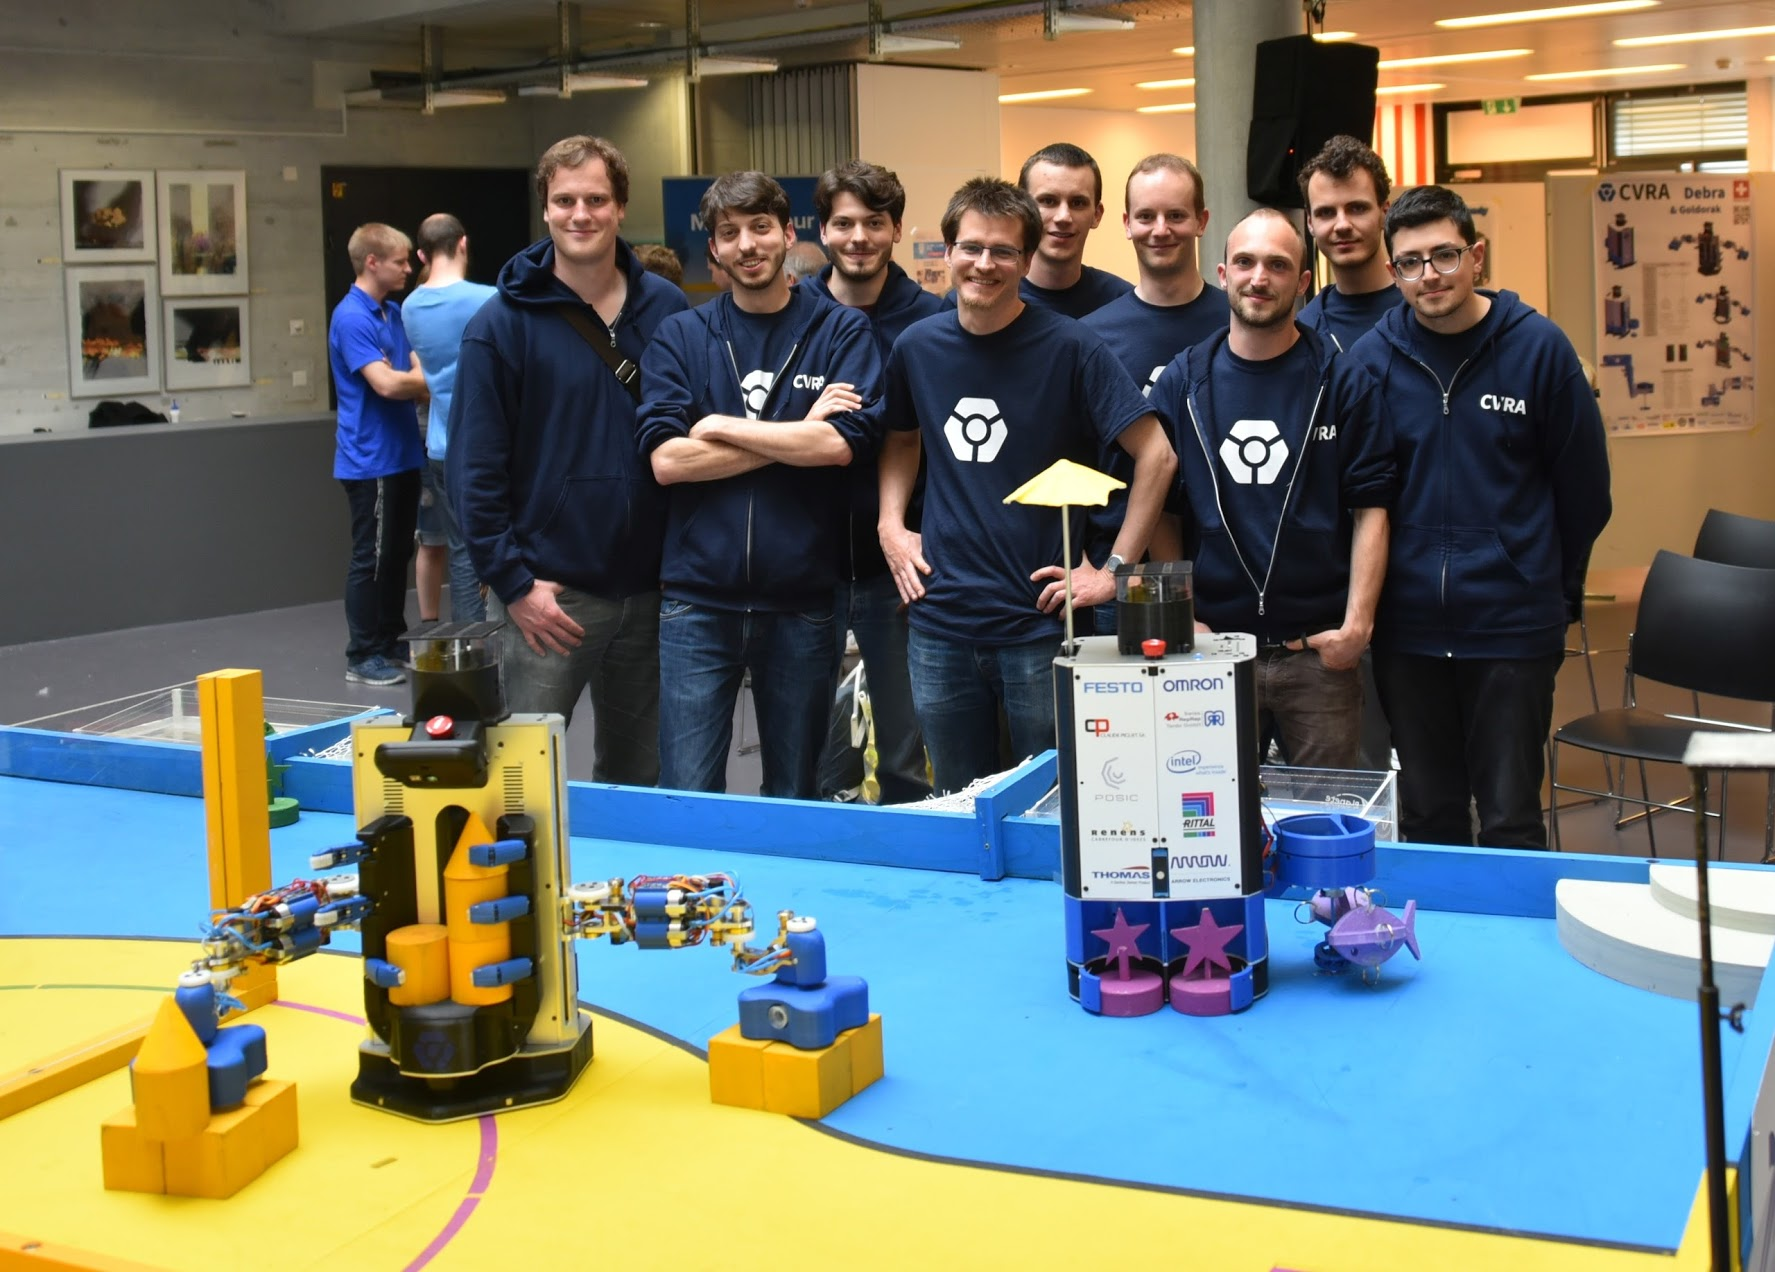 The team posing in front of the robots.